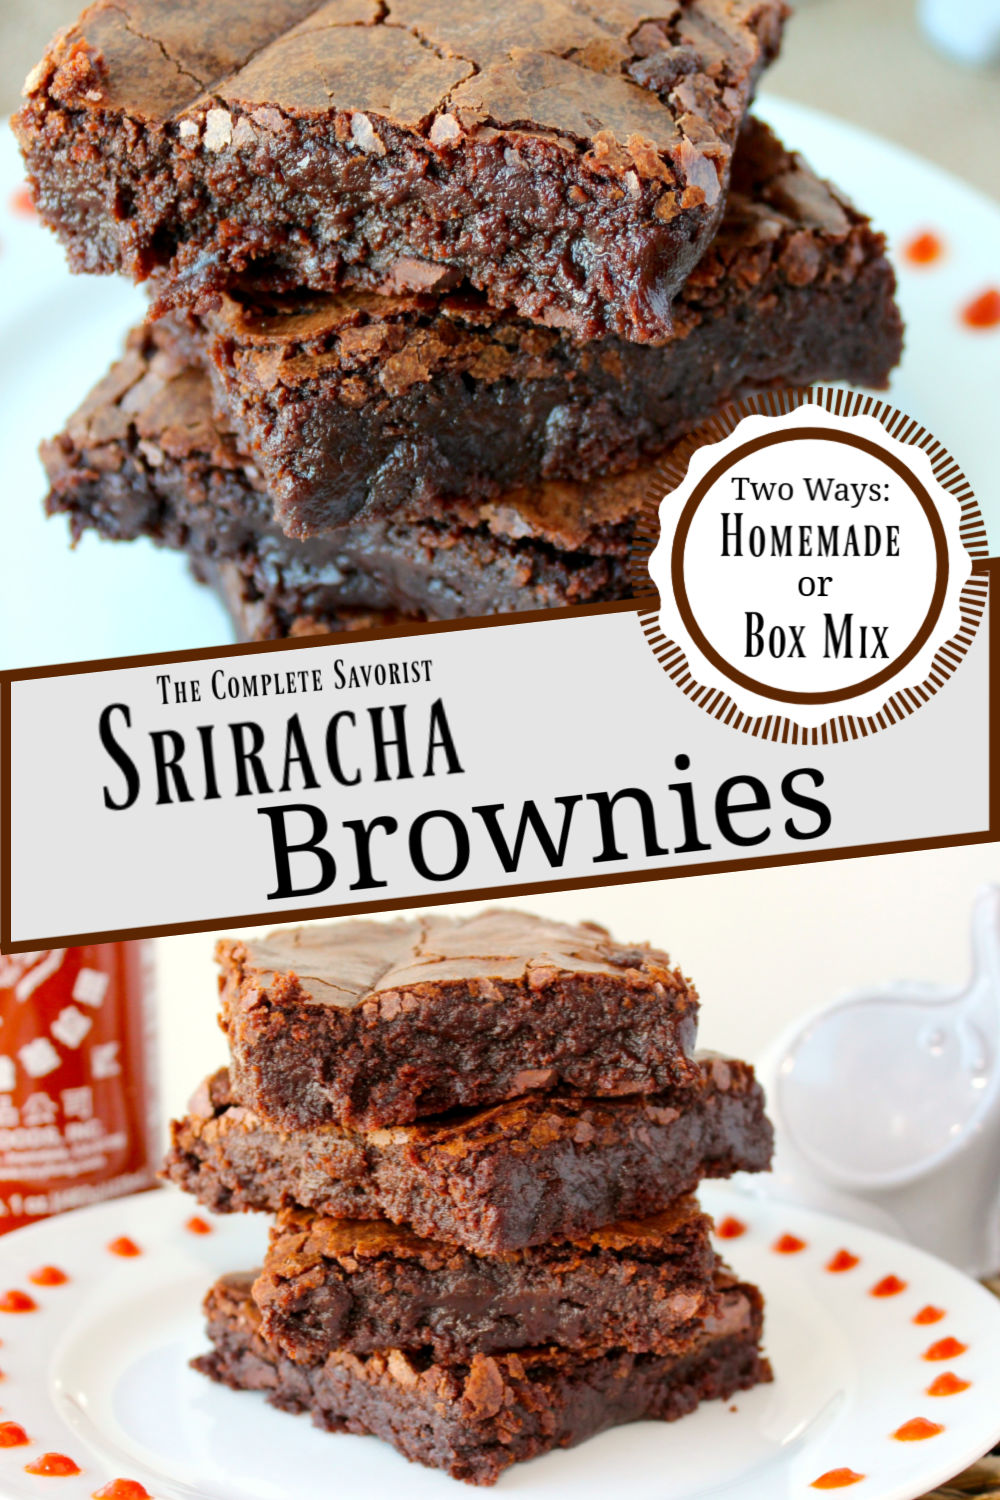 Split image of Sriracha brownies on a white plate.